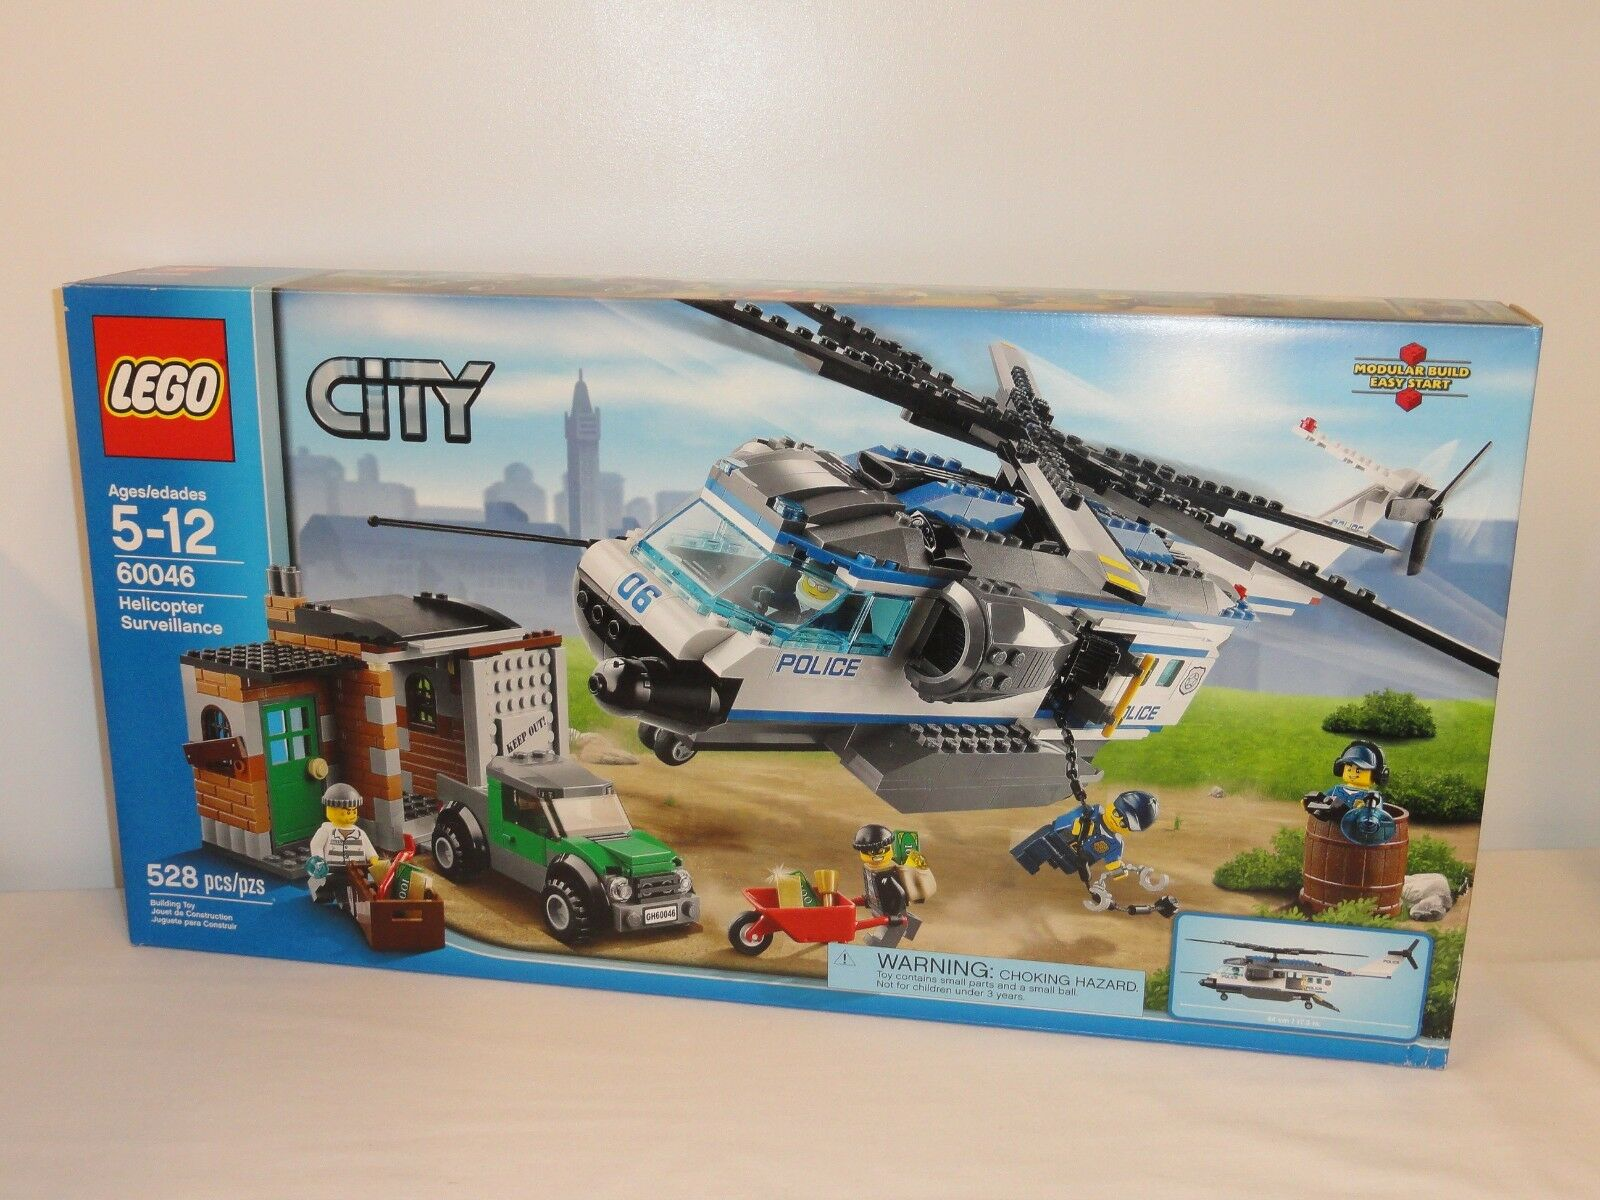 NEW LEGO City City City Helicopter Surveillance 60046 Factory Sealed Box Set 2014 2c62a3